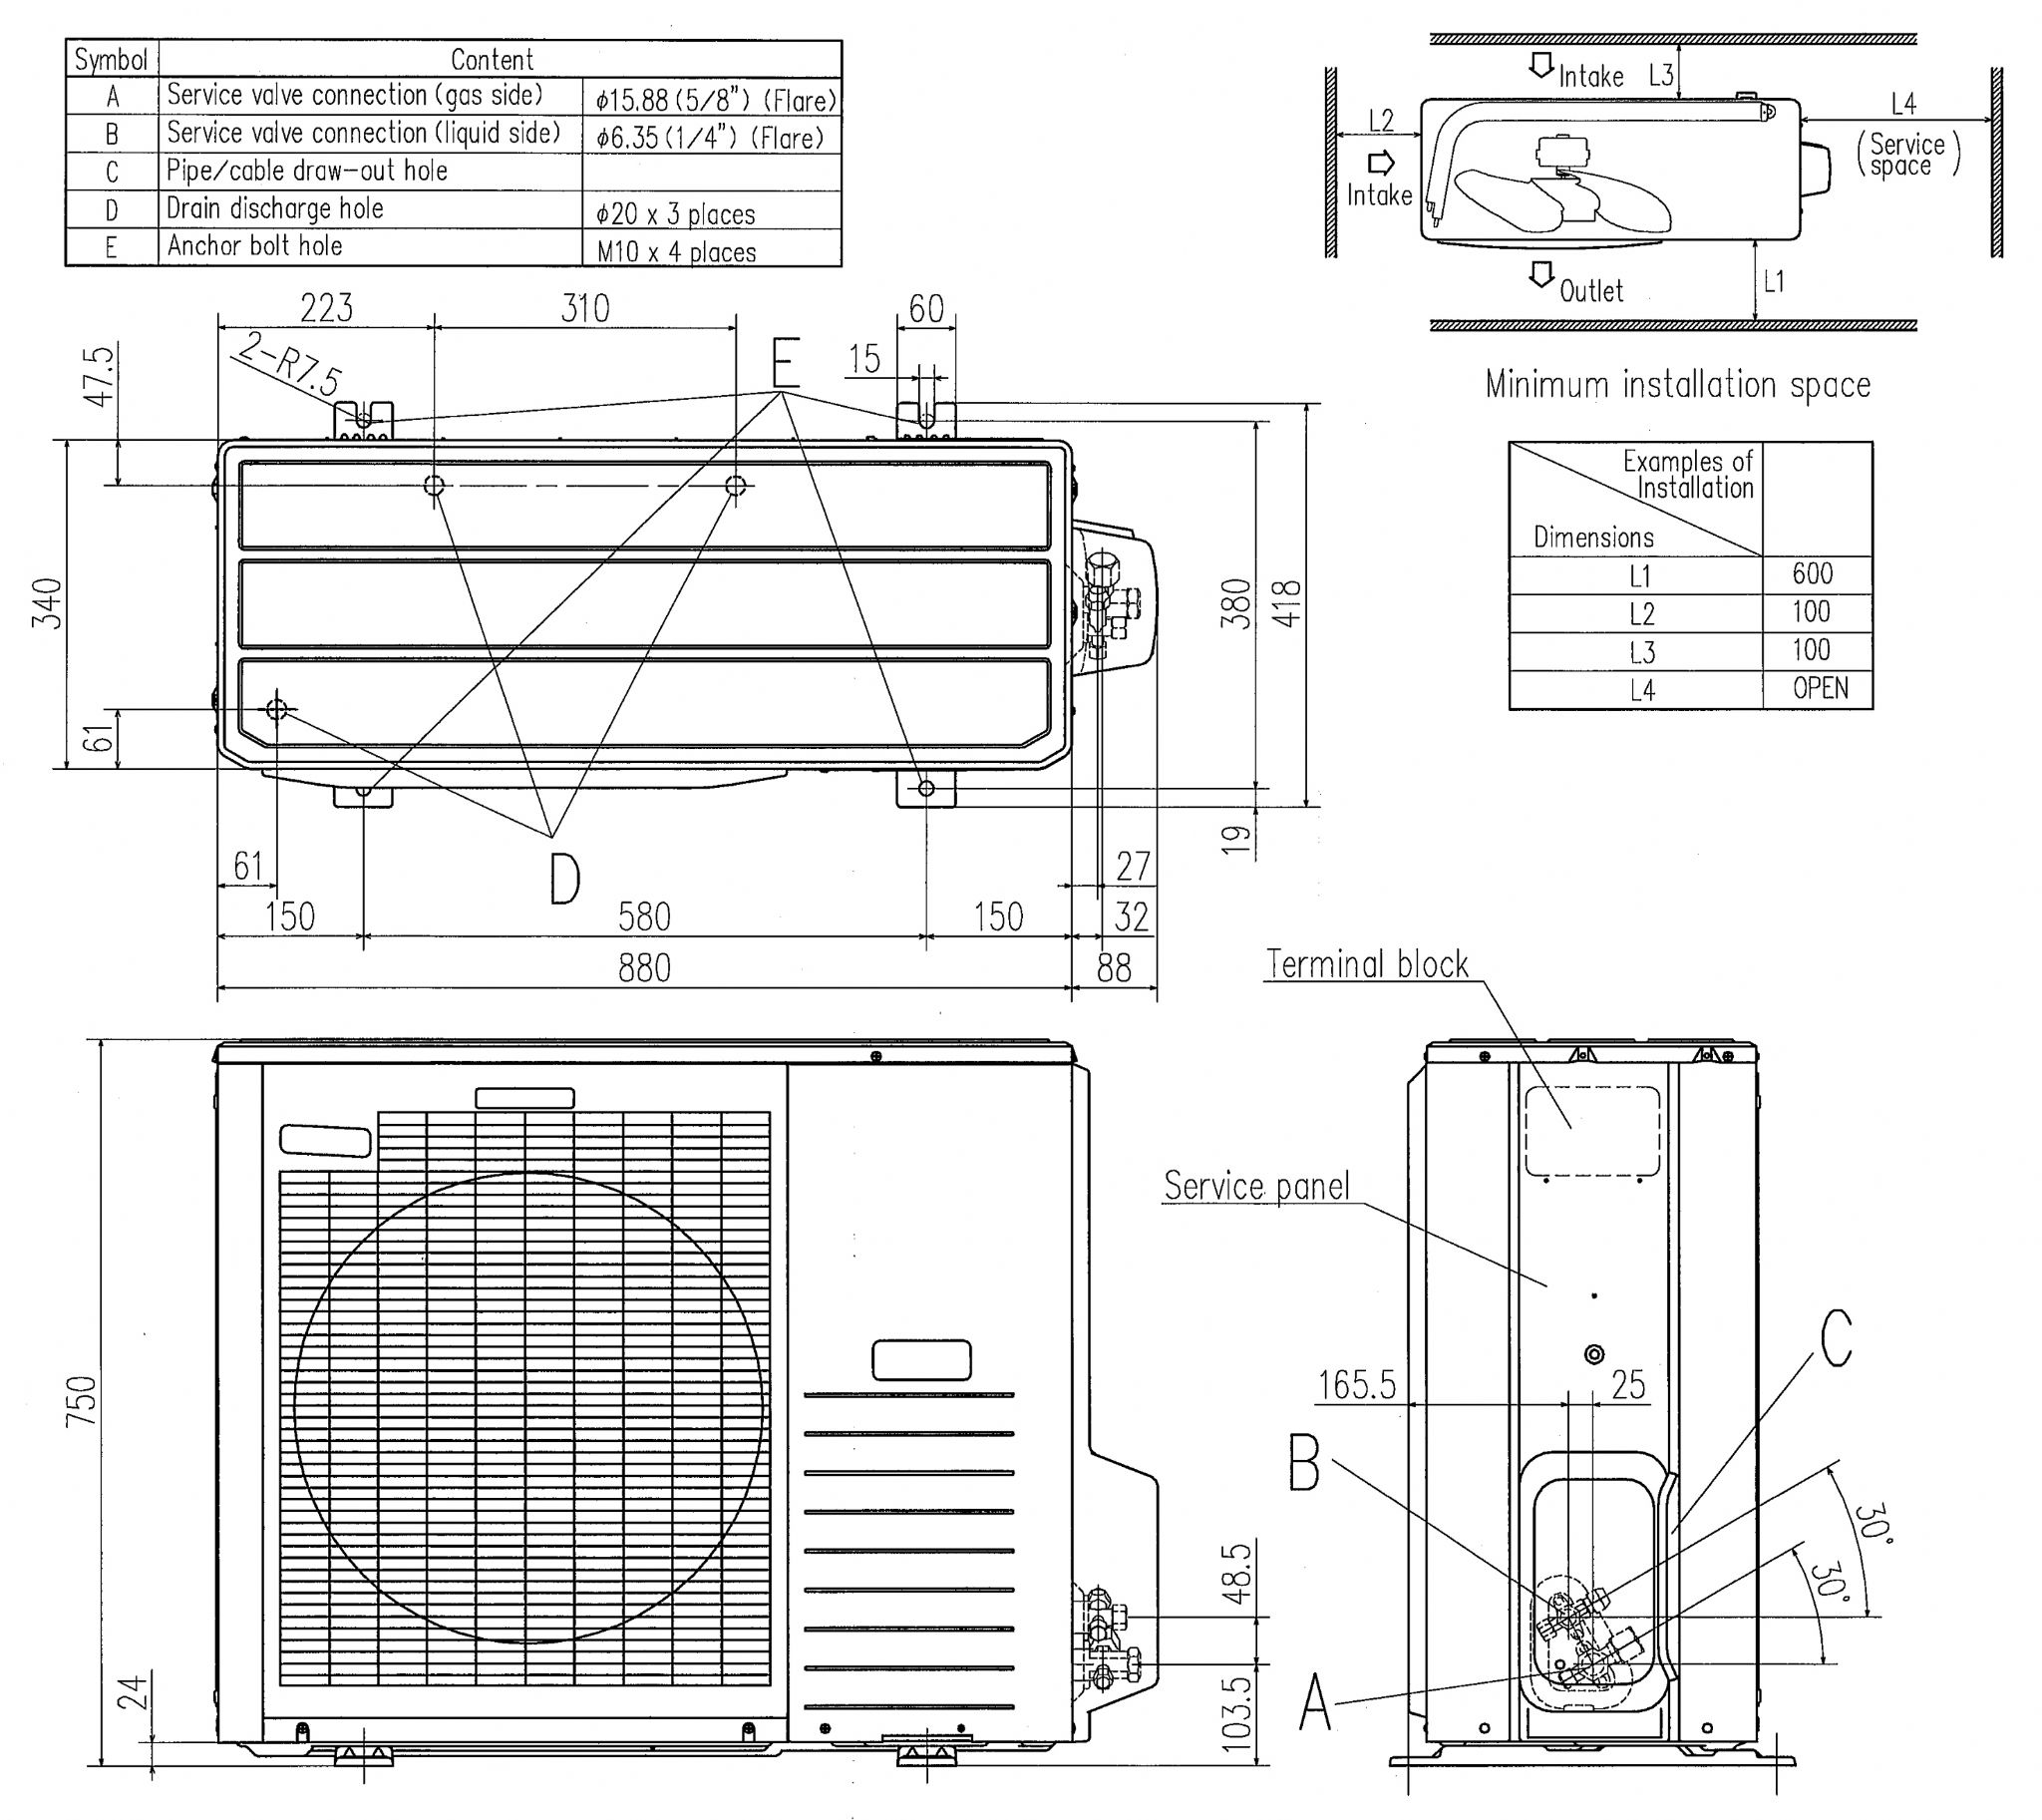 Garage Plans With Apartment One Level Gar Lower Plan Current Gar as well Home Depot Kitchen Cabi s Reviews also Sacramento Garage Door Repair together with Wall Mounted Fan further Lowe S Wire Shelf White. on at home depot garage cabinets